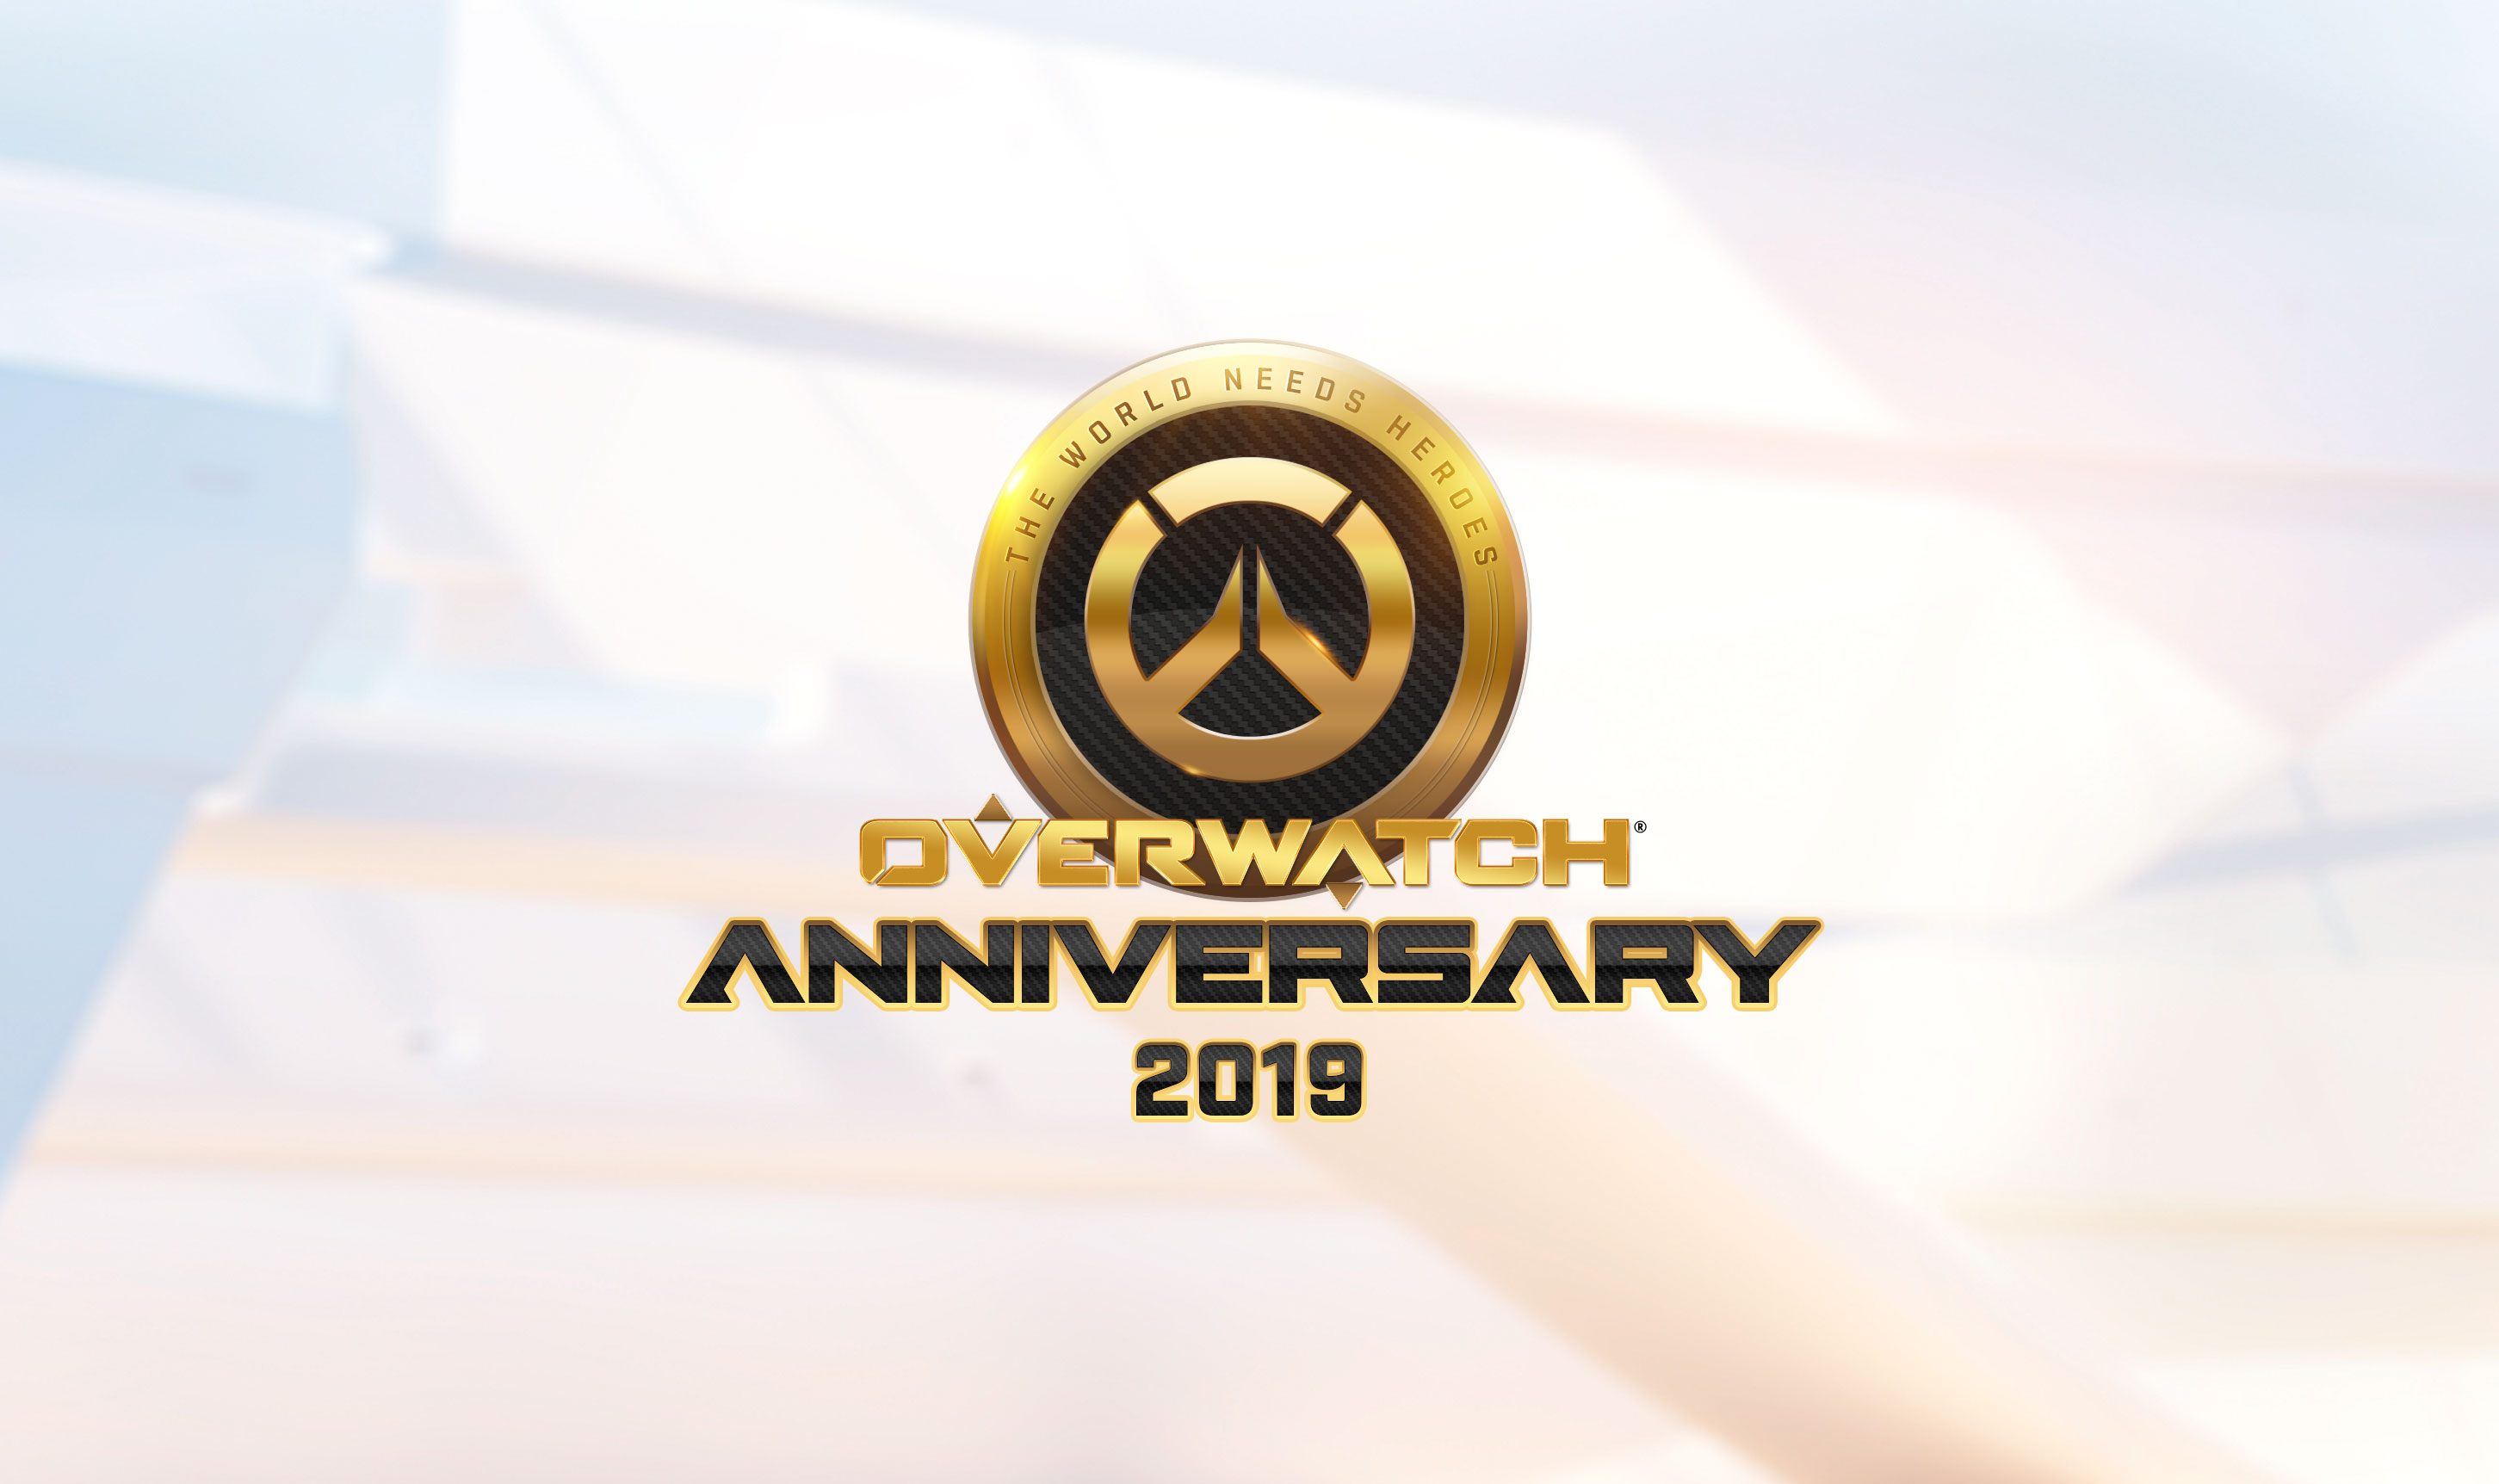 Overwatch Anniversary event kicks off May 21 alongside a free trial - VG247